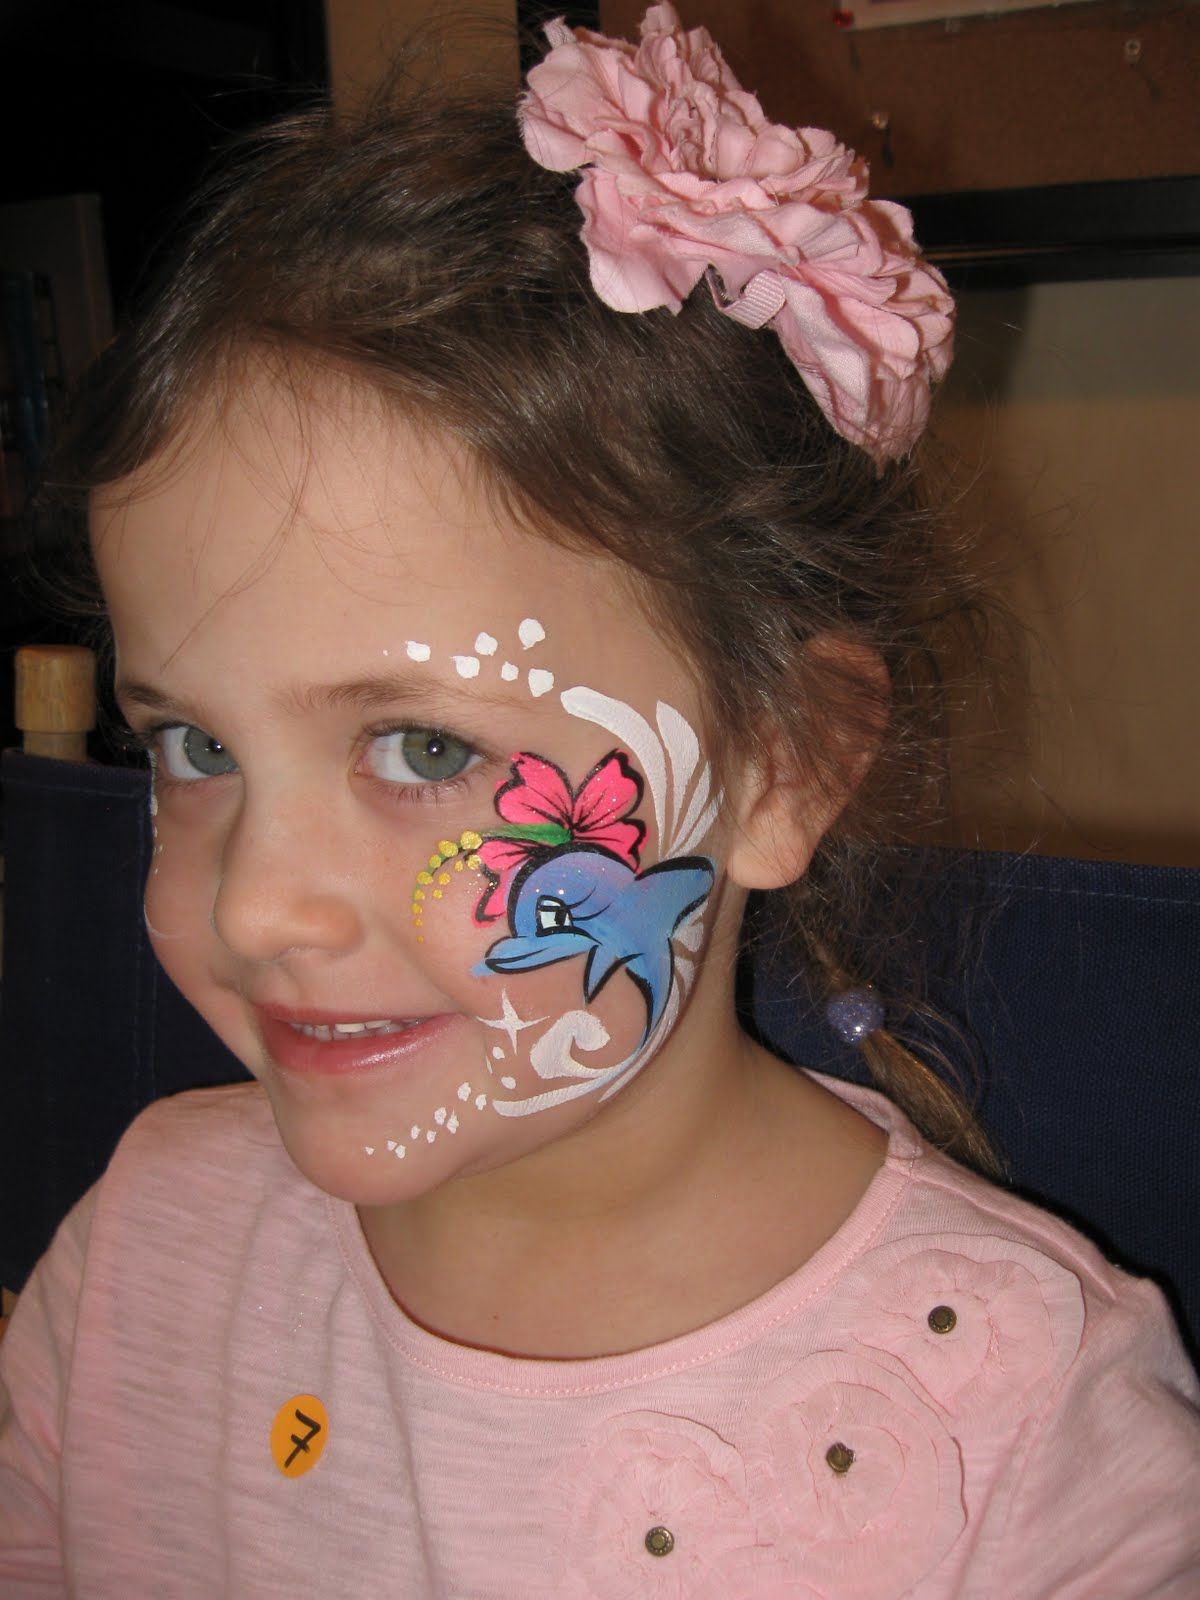 Kids Party Face Painting  easy face painting designs